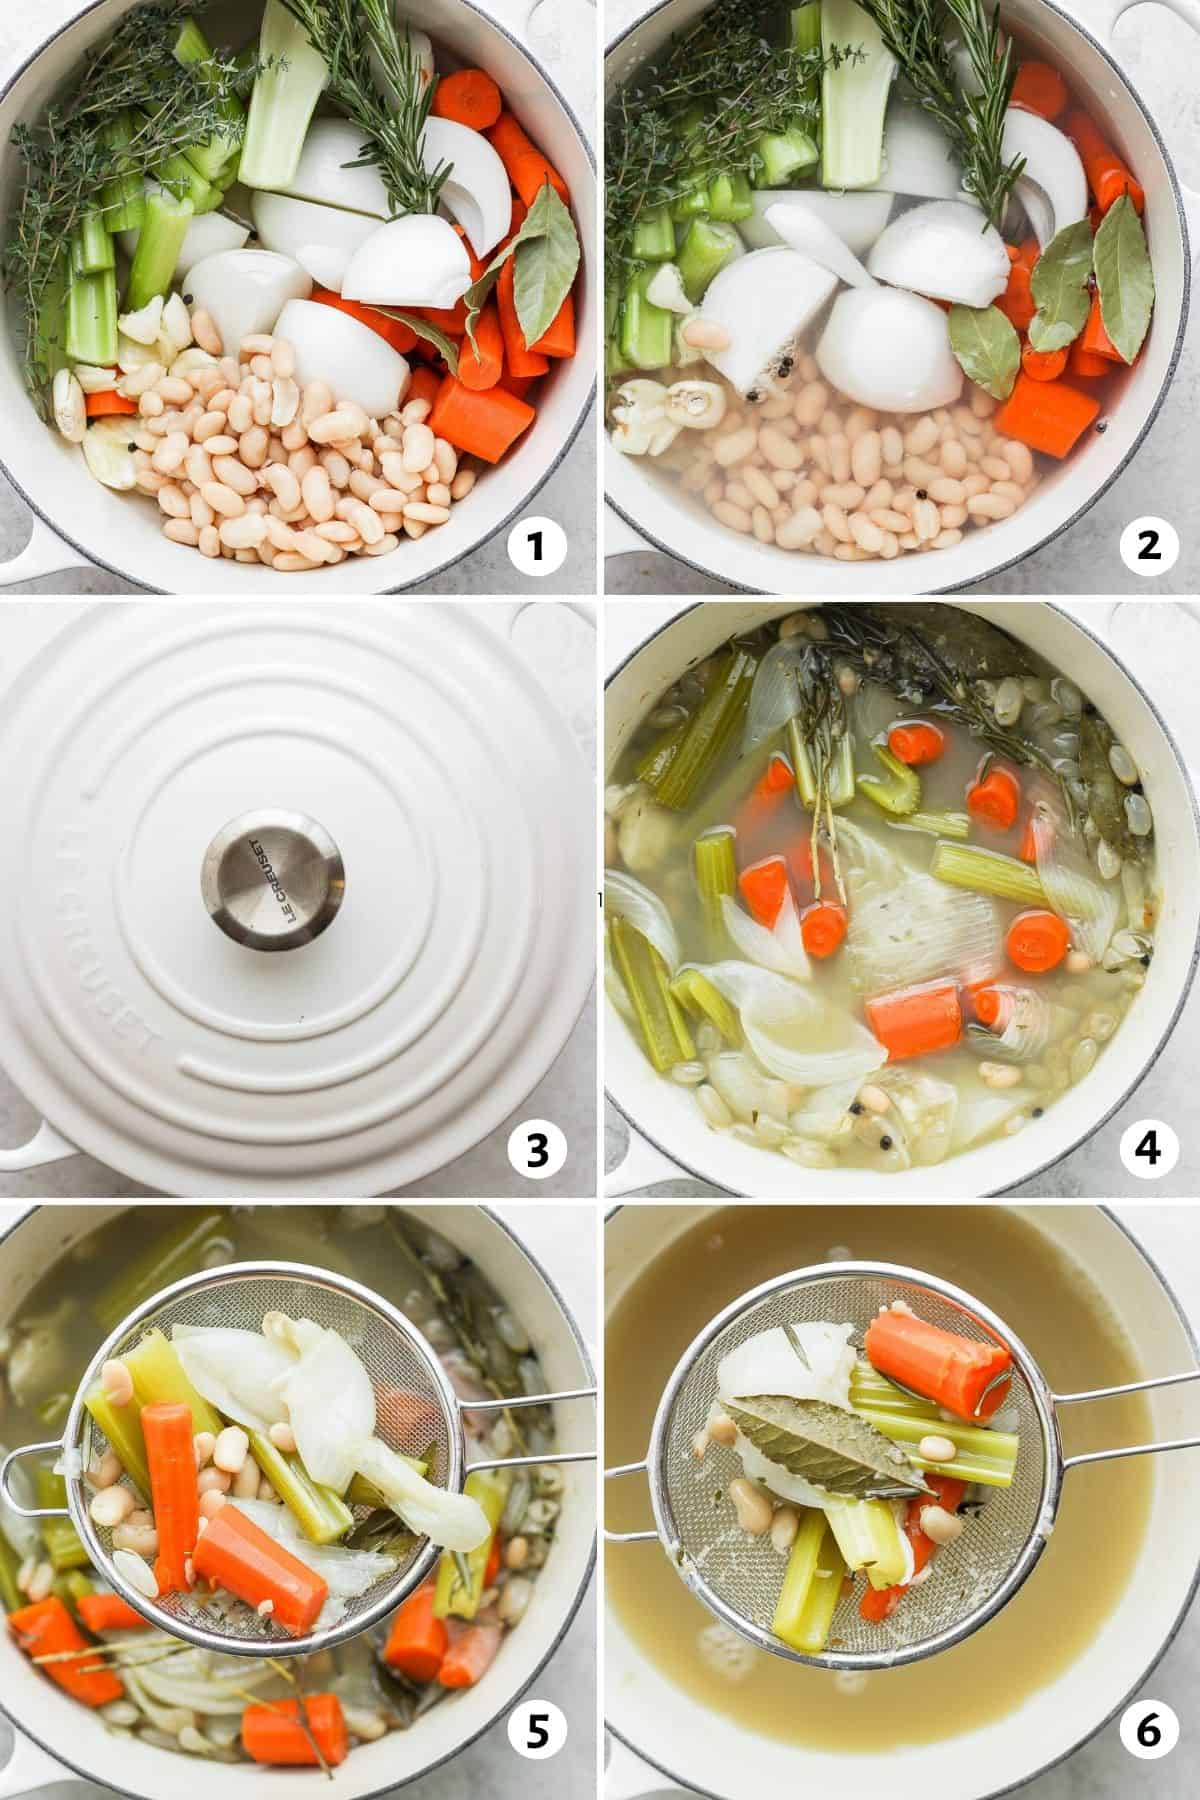 6 image collage showing a dutch oven with the ingredients in it and the steps to make the recipe